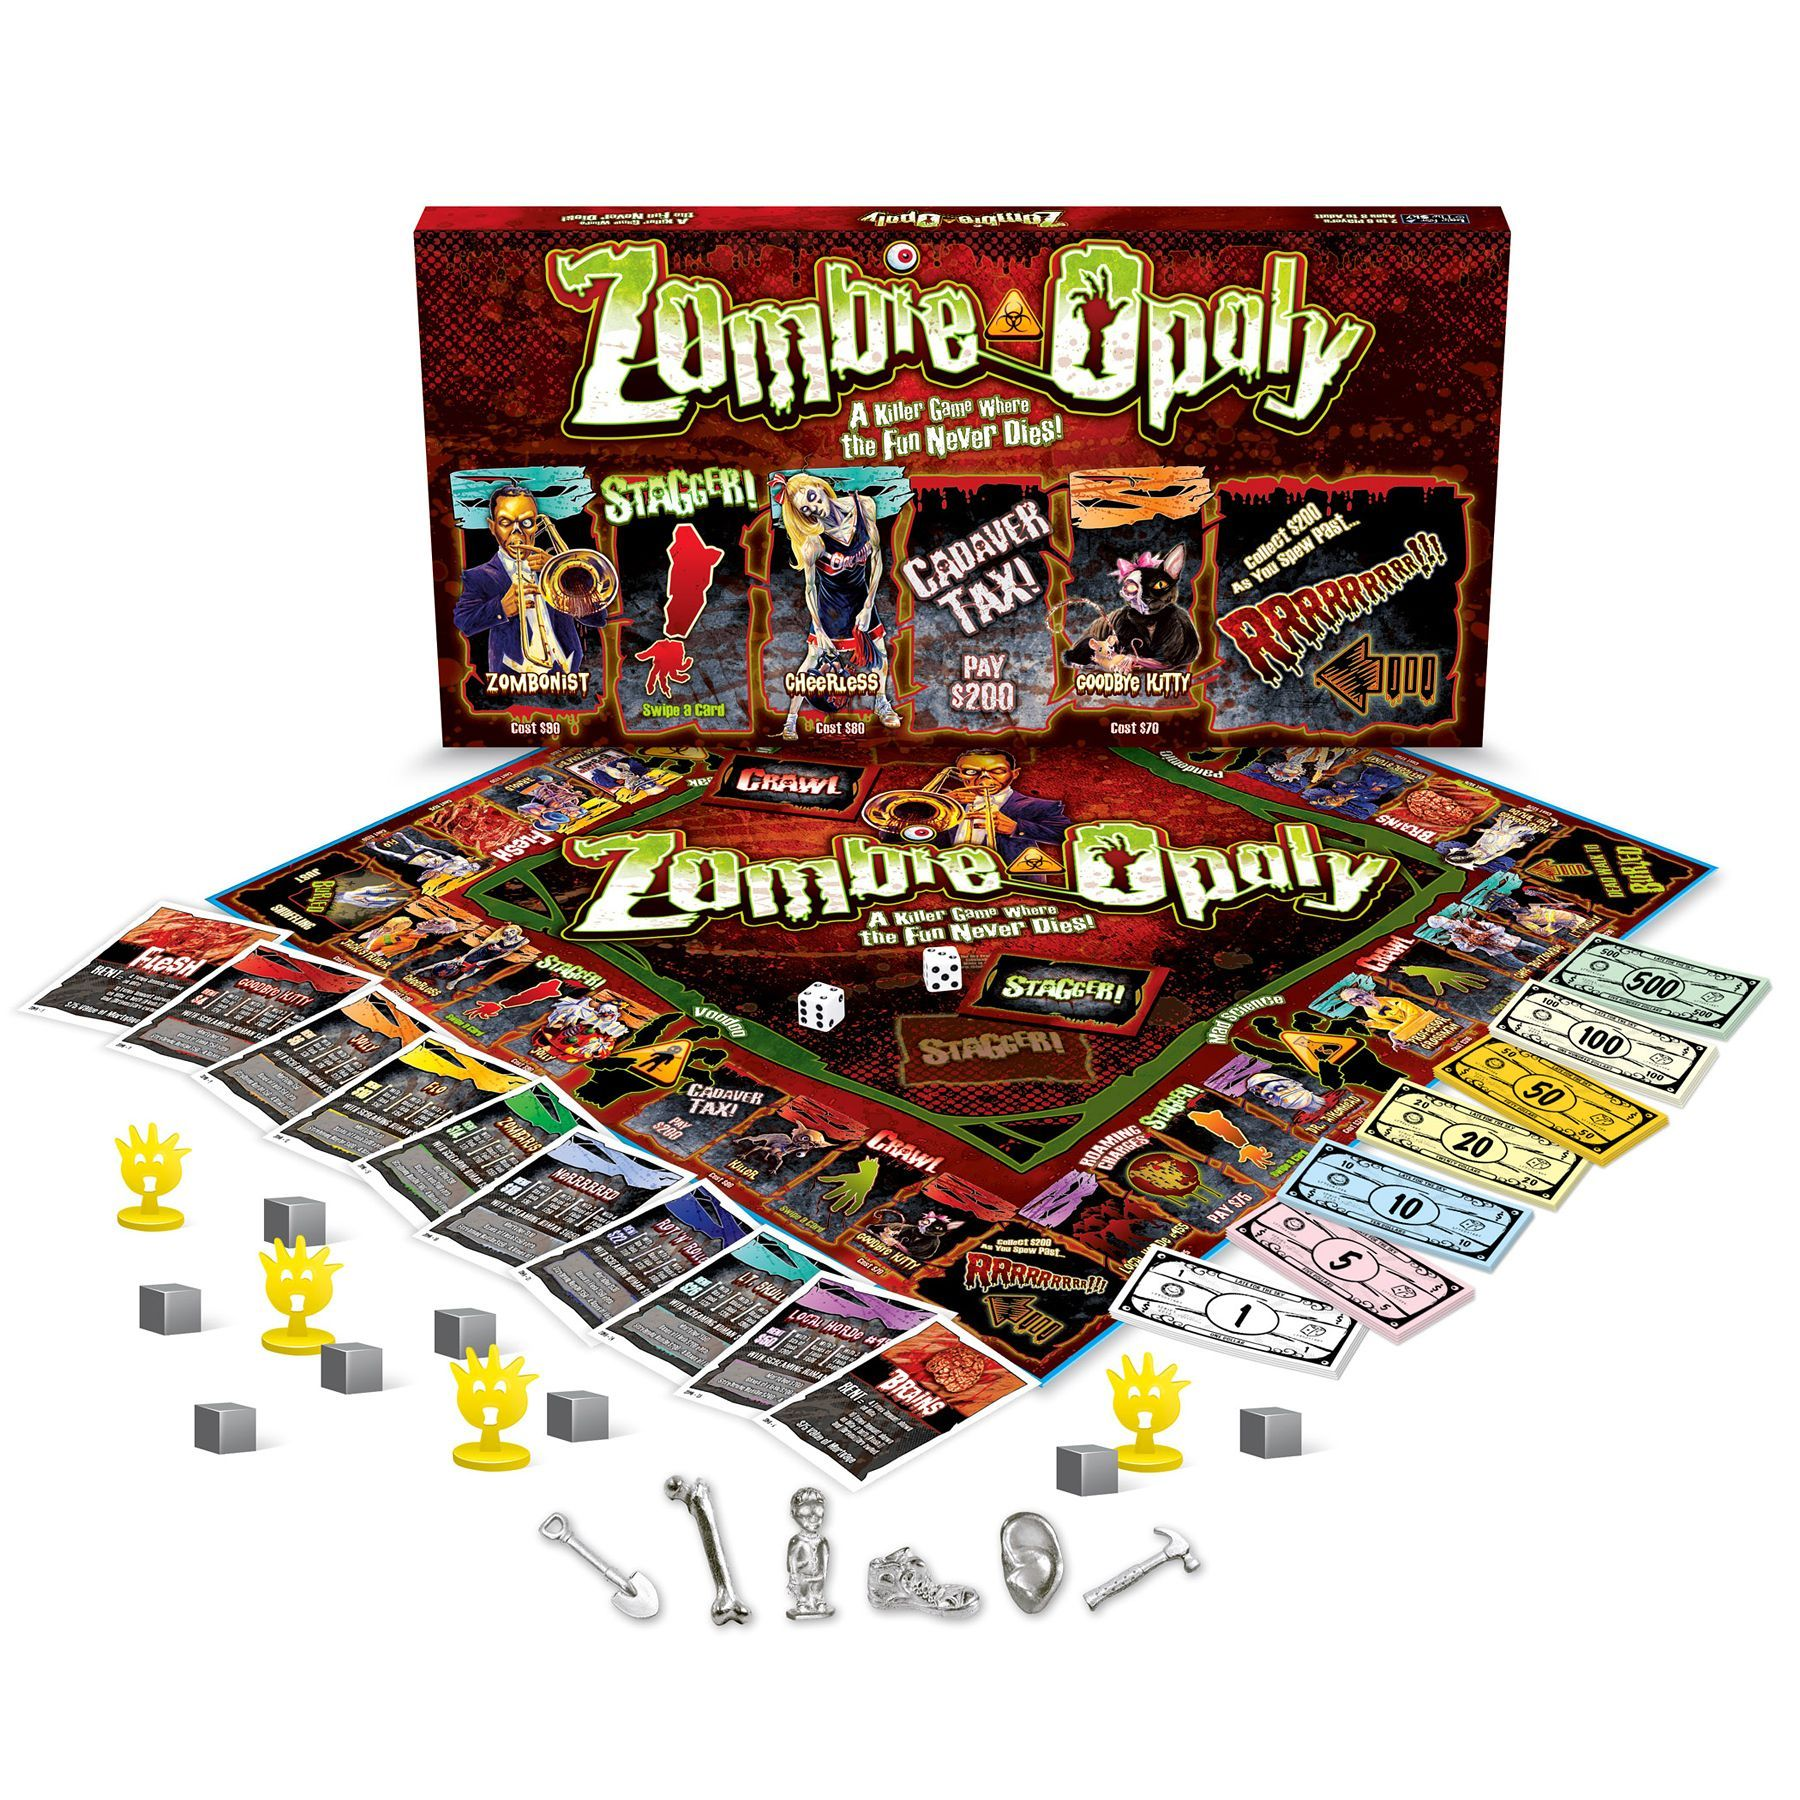 Overstock Com Online Shopping Bedding Furniture Electronics Jewelry Clothing More Games Zombie Zombie Board Game Board Games